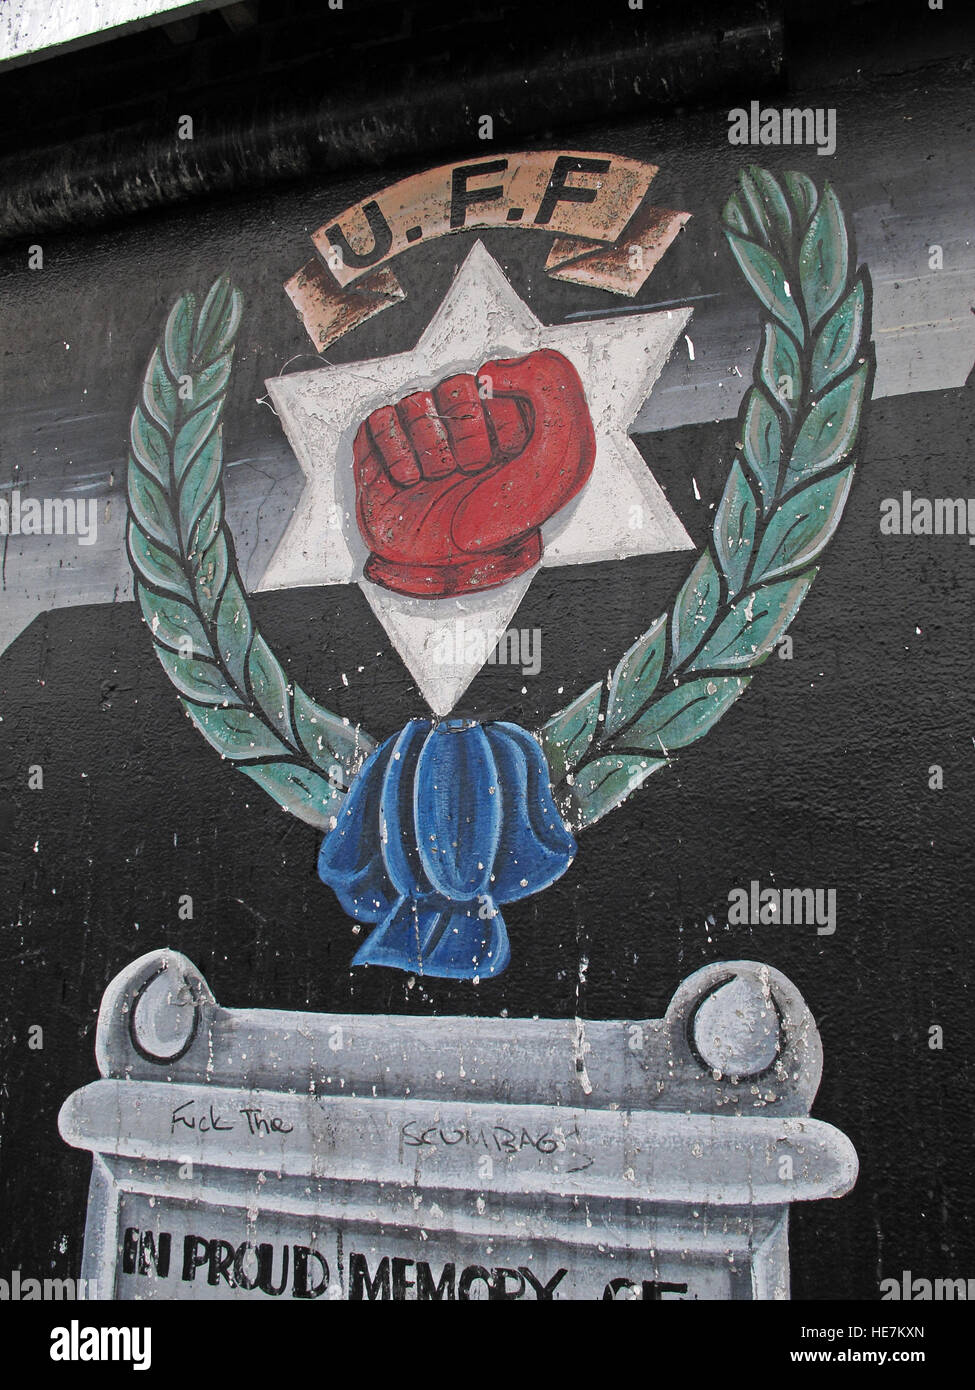 Red hand,Ulster,memorial,UFF,Unionist,mural,off,Shankill,rd,Road,West Belfast,Northern Ireland,UK,Ireland,fighter,fighting,GoTonySmith,@HotpixUK,Tony,Smith,UK,GB,Great,Britain,United,Kingdom,Irish,British,Ireland,problem,with,problem with,issue with,NI,Northern,Northern Ireland,Belfast,City,Centre,Art,Artists,the,troubles,The Troubles,Good Friday Agreement,Peace,honour,painting,wall,walls,tribute,Unionist,unionism,Protestant,community,Fight,Justice,West,Beal,feirste,martyrs,social,tour,tourism,tourists,urban,six,counties,6,backdrop,county,Antrim,UVF,DUP,British,GB,Empire,Shankill,Rd,Road,Buy Pictures of,Buy Images Of,Images of,Stock Images,Tony Smith,United Kingdom,Great Britain,British Isles,Belfast protestant community,Peoples army,Shankill Road